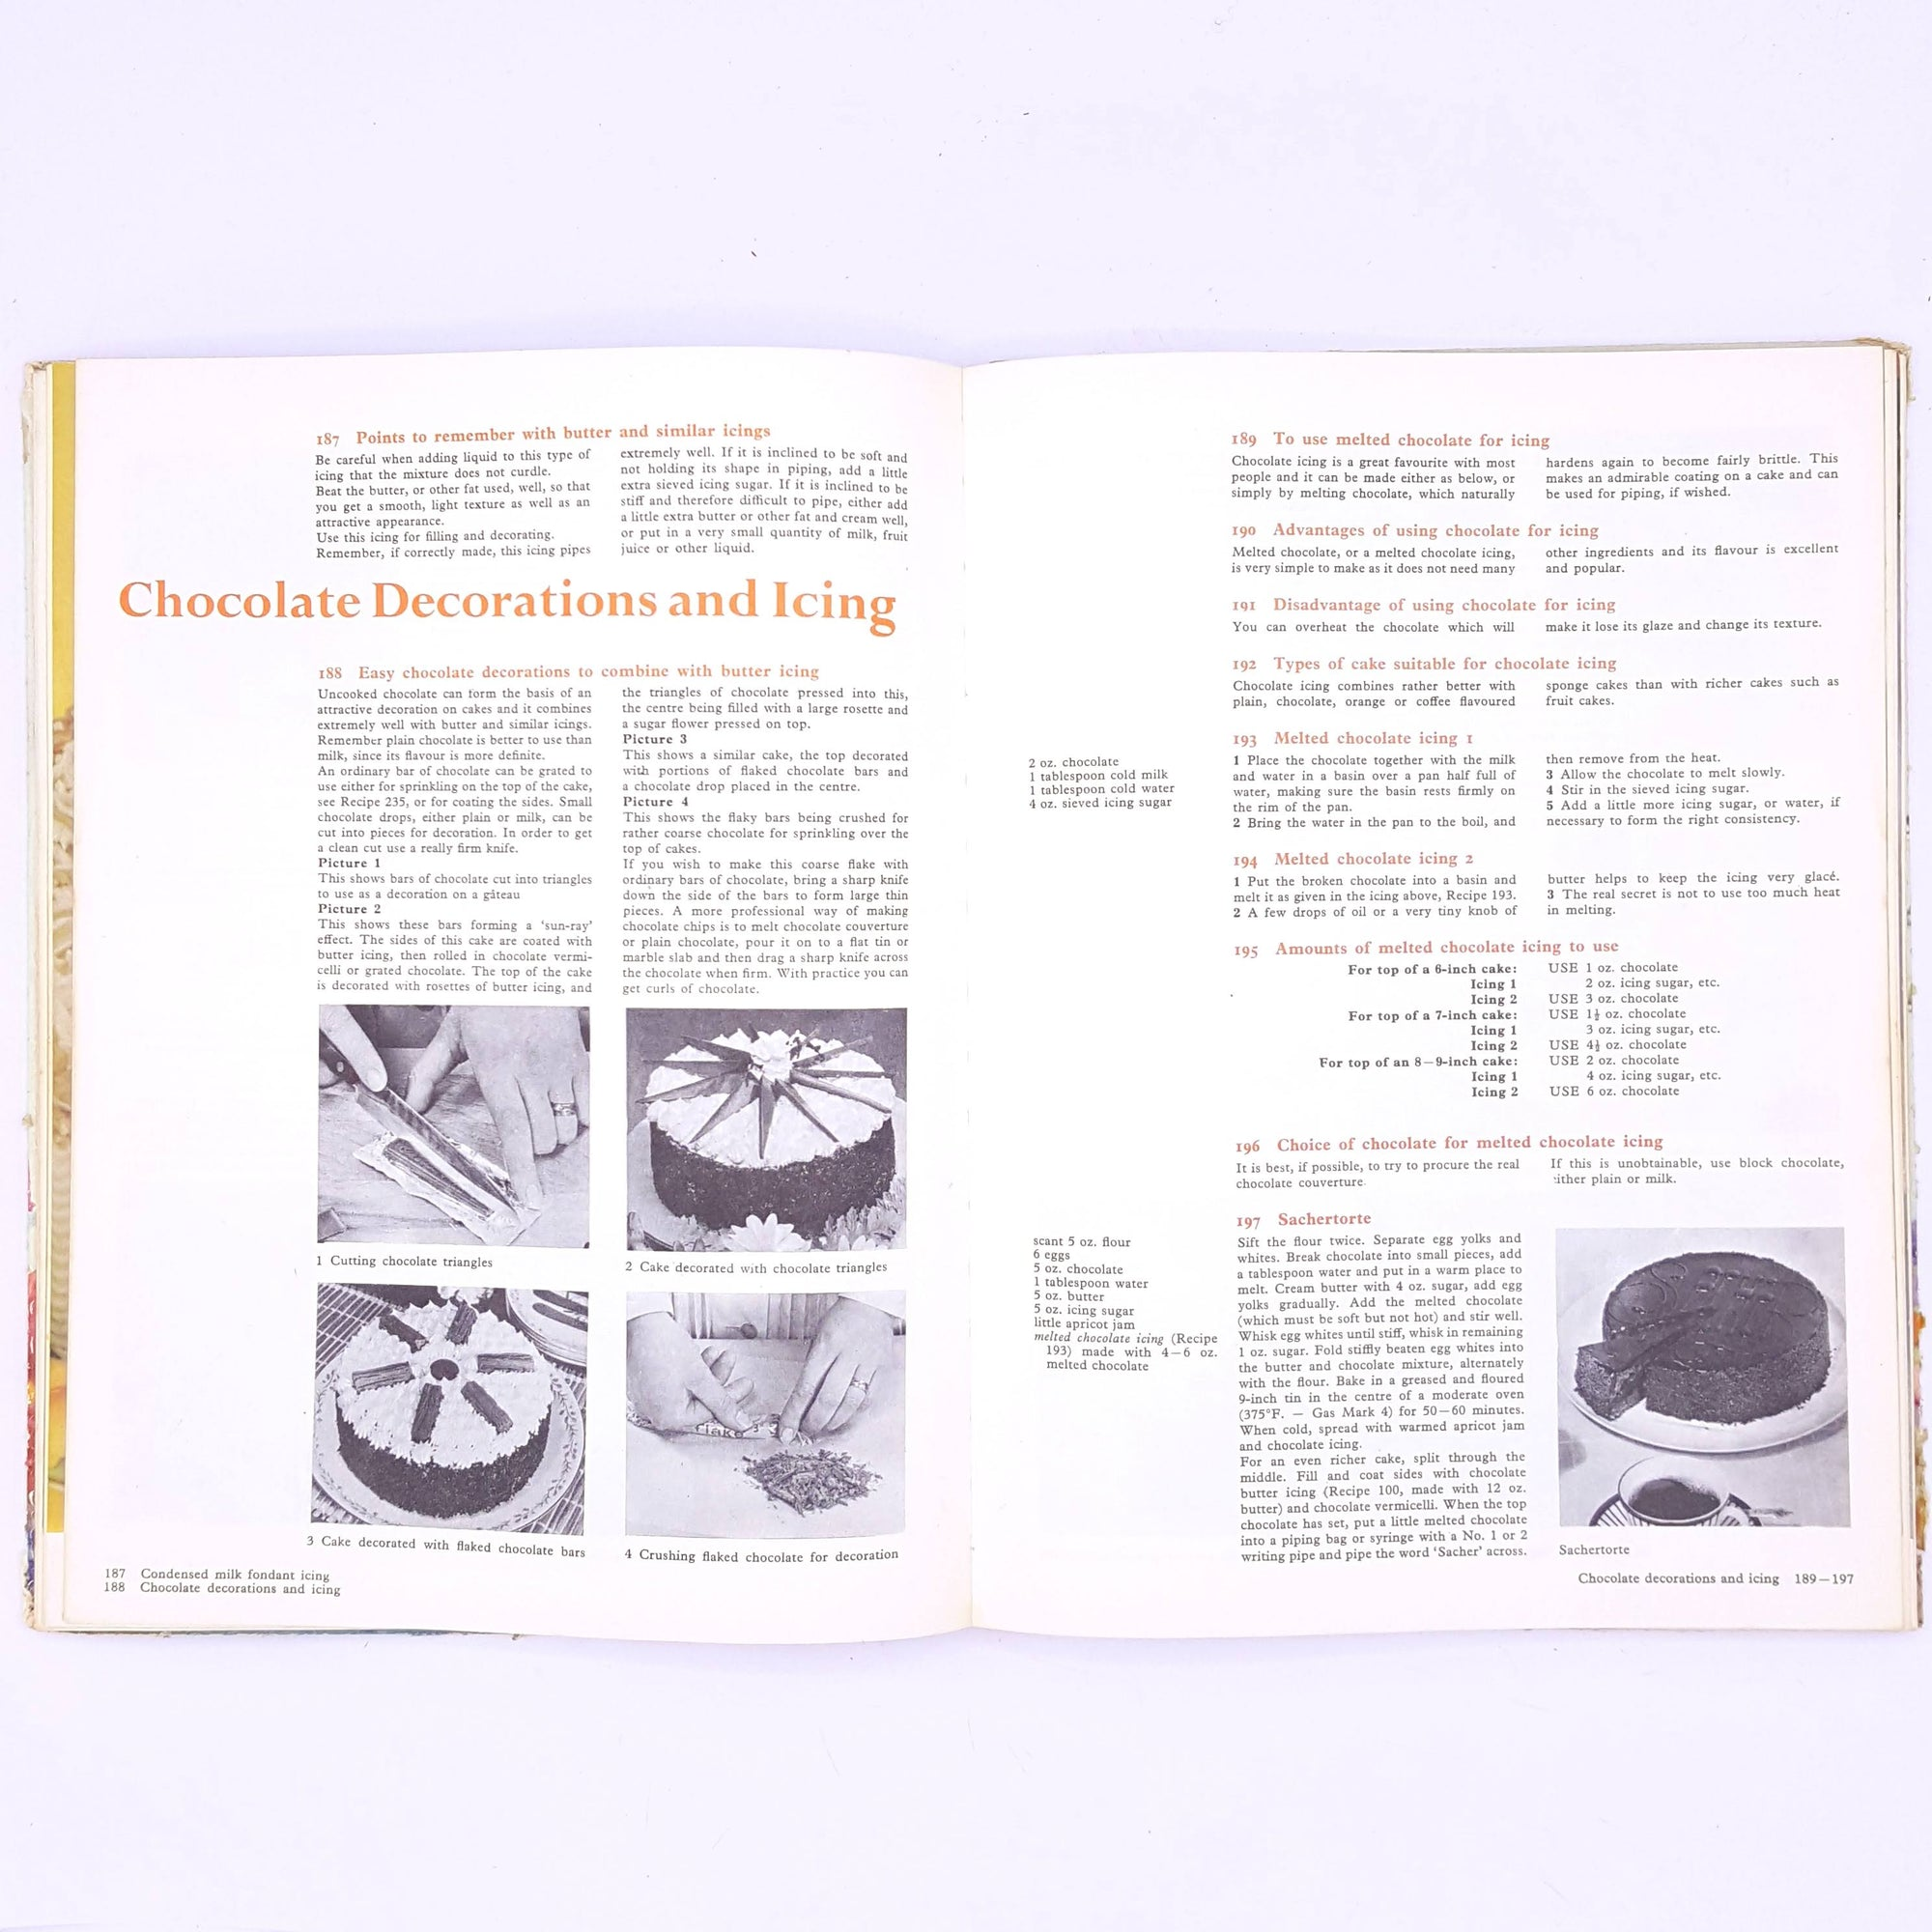 cake-icing-and-decoration-marguerite-patten-country-house-library-baking- gifts-for-foodies-cookbook-classic-skills-recipes-hobbies-cooking-thrift-food-vintage-cookbooks-old-patterned-antique-decorative-books-